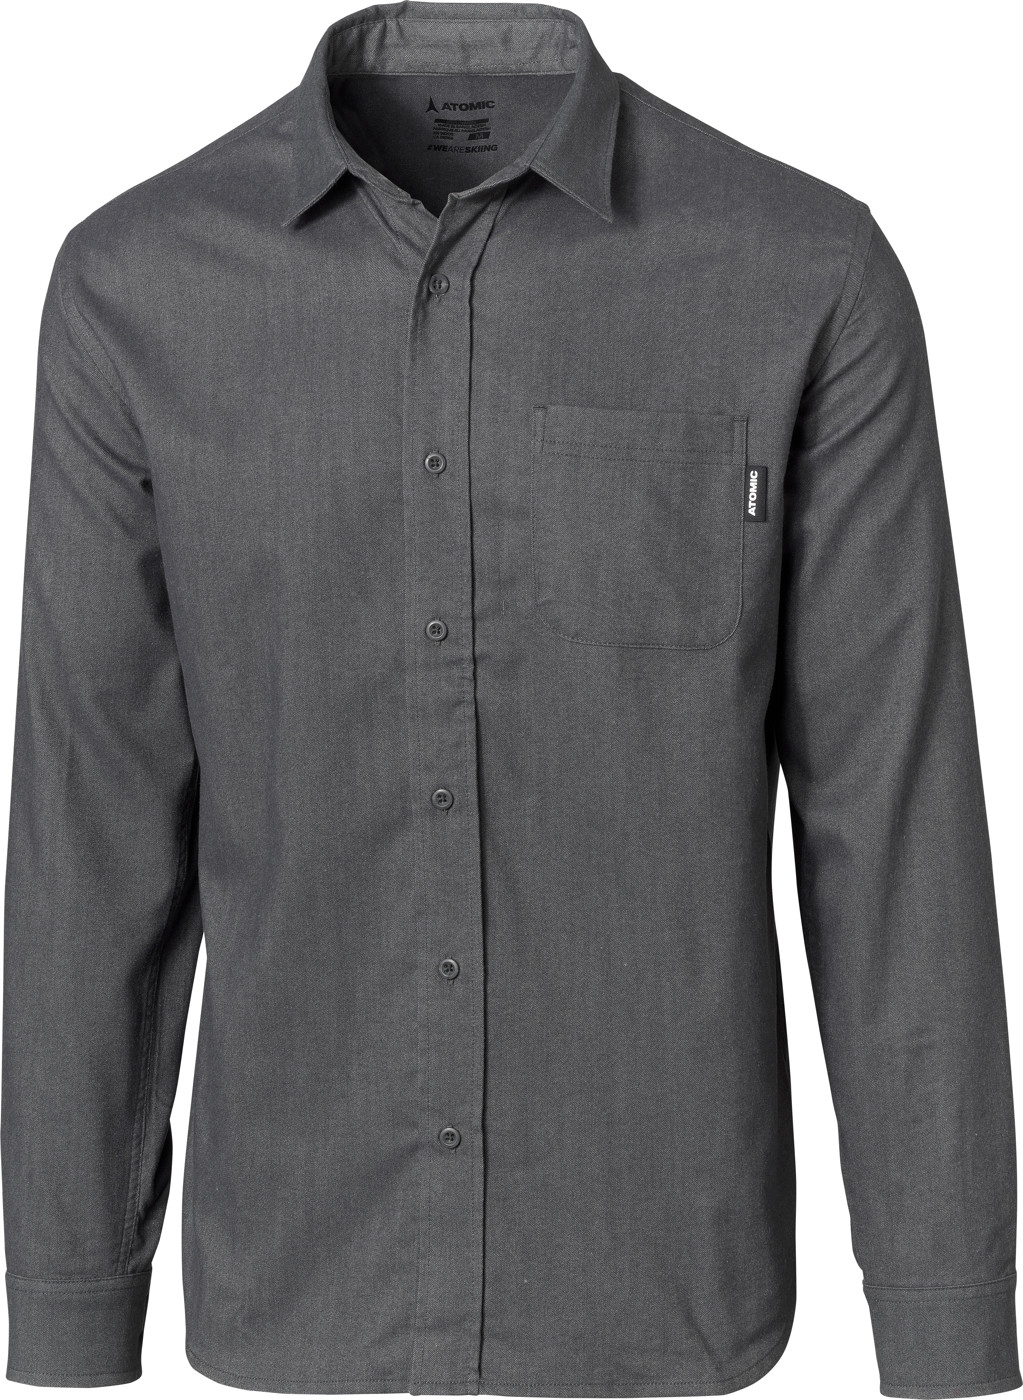 ATOMIC FLANNEL SHIRT Dark Grey M - Herren